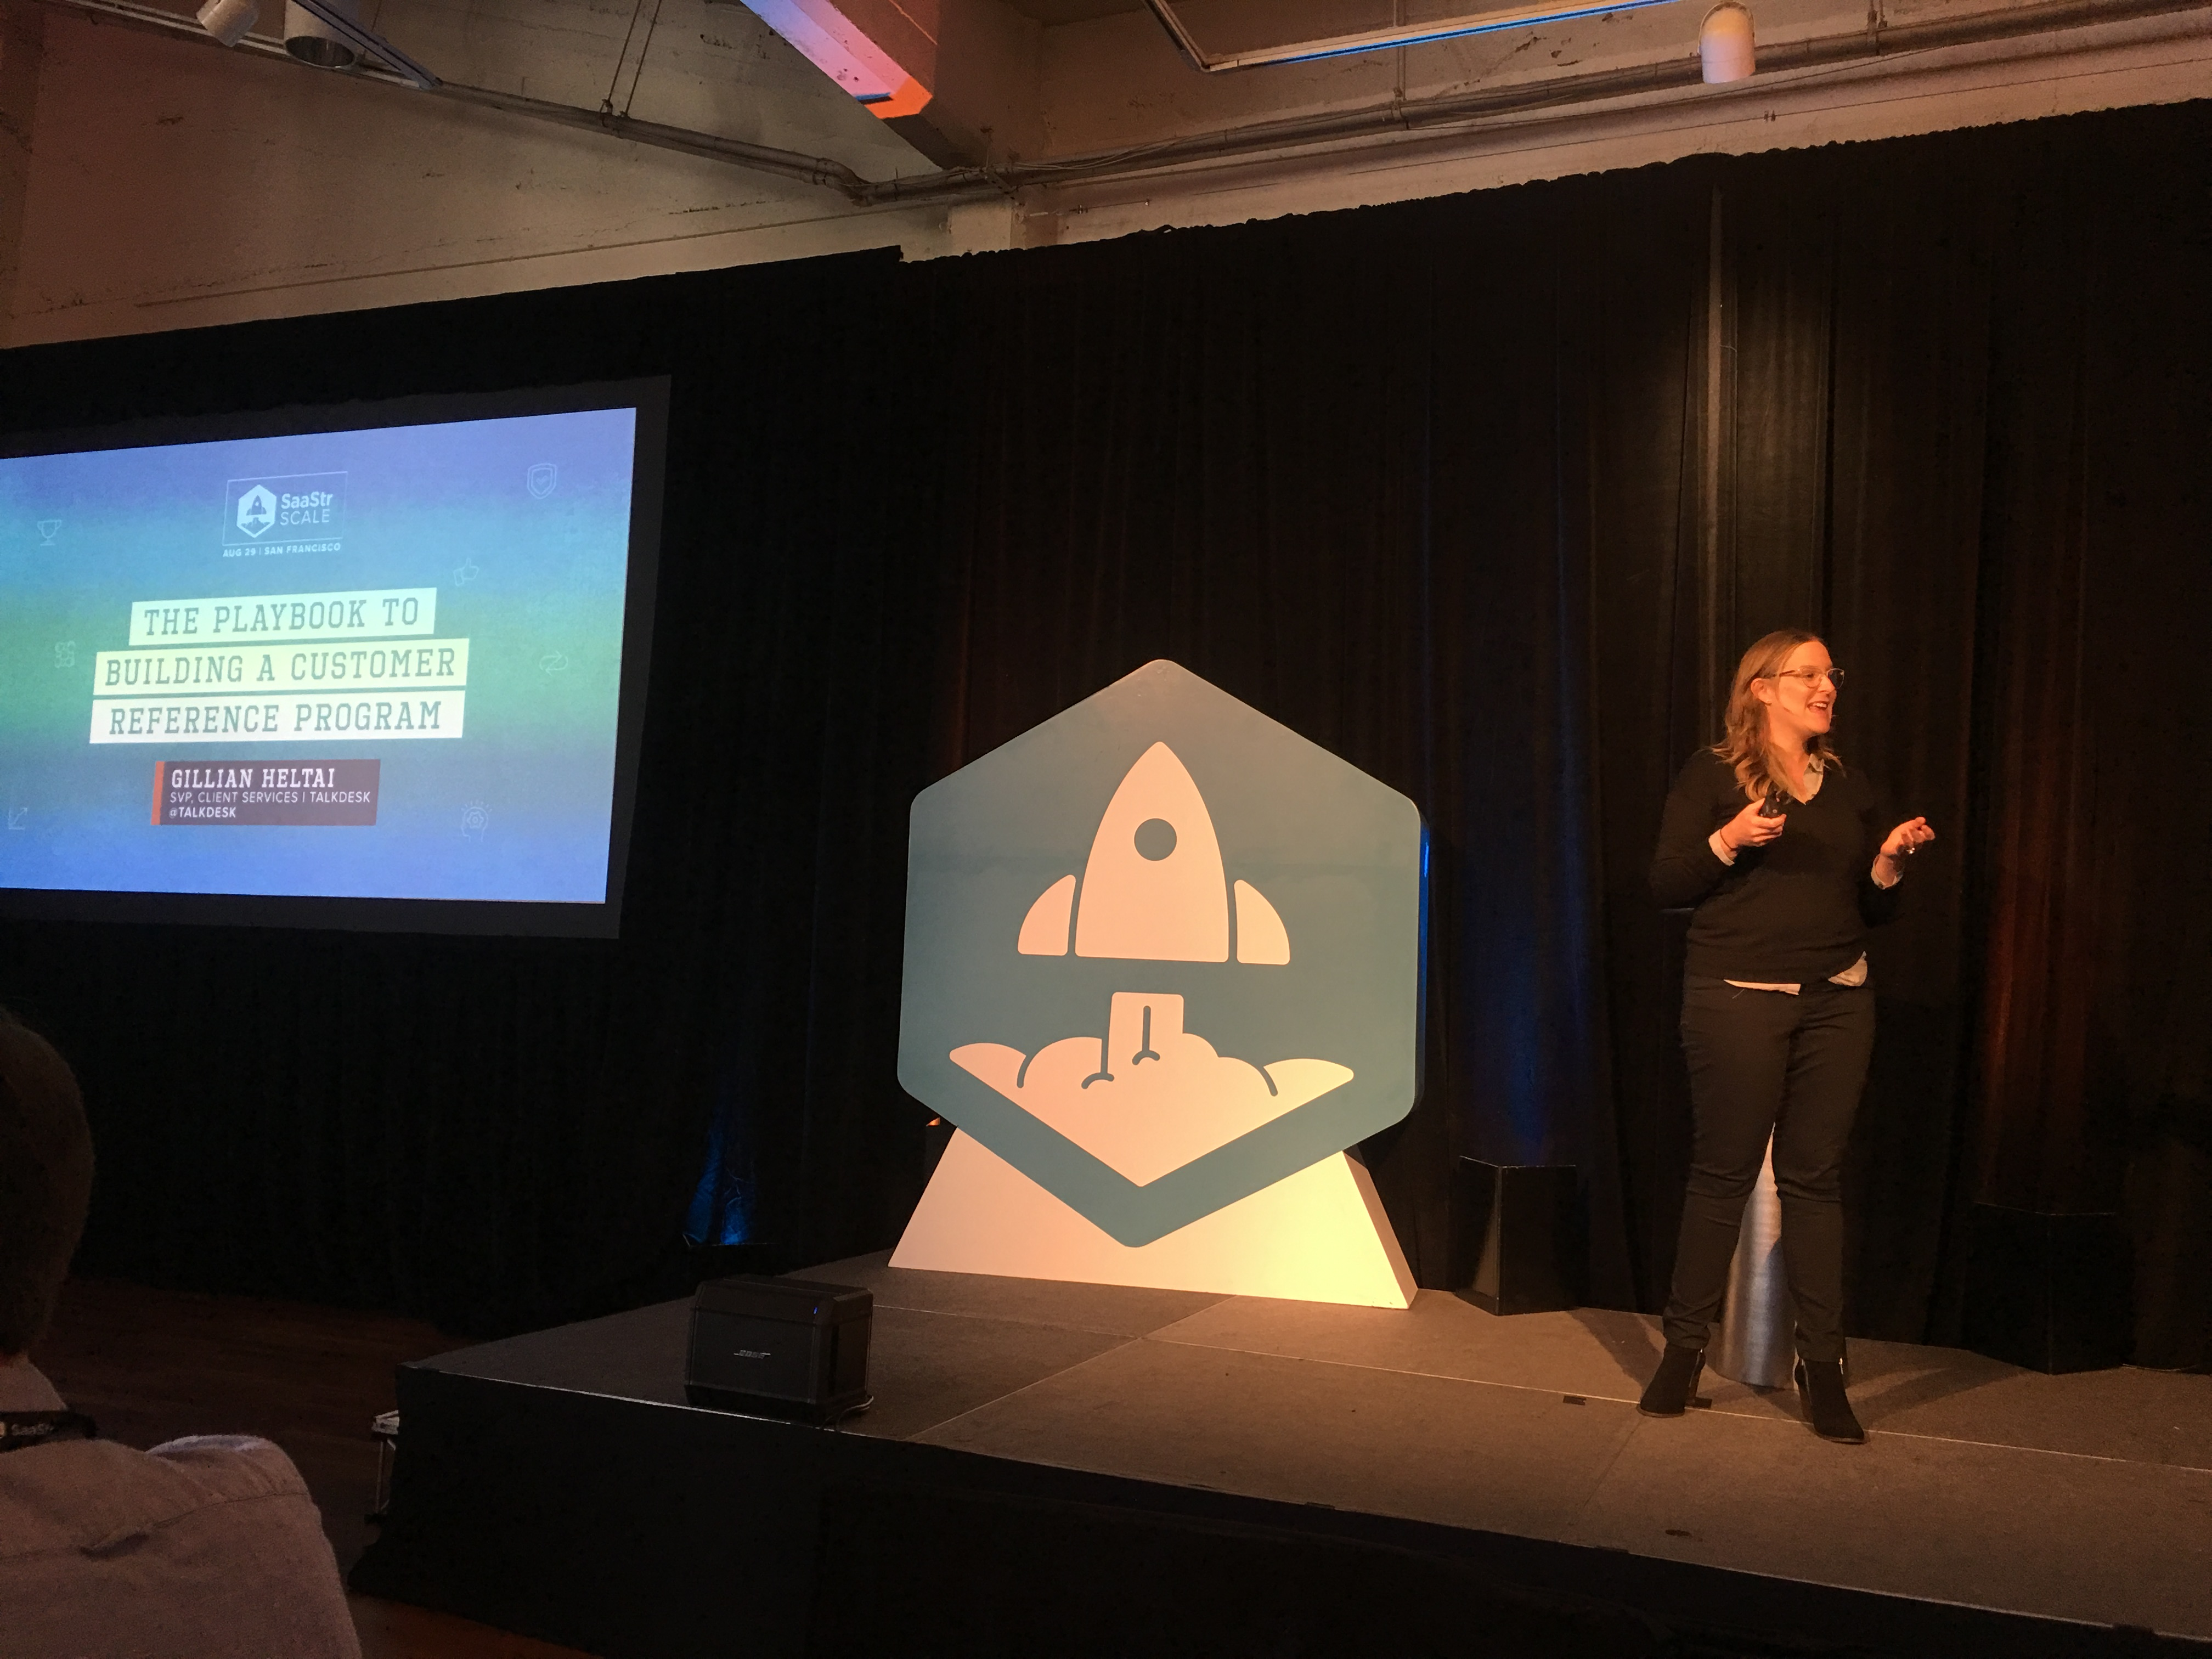 SaaStr Scale: The Playbook to Building a Customer Reference Program with Gillian Heltai